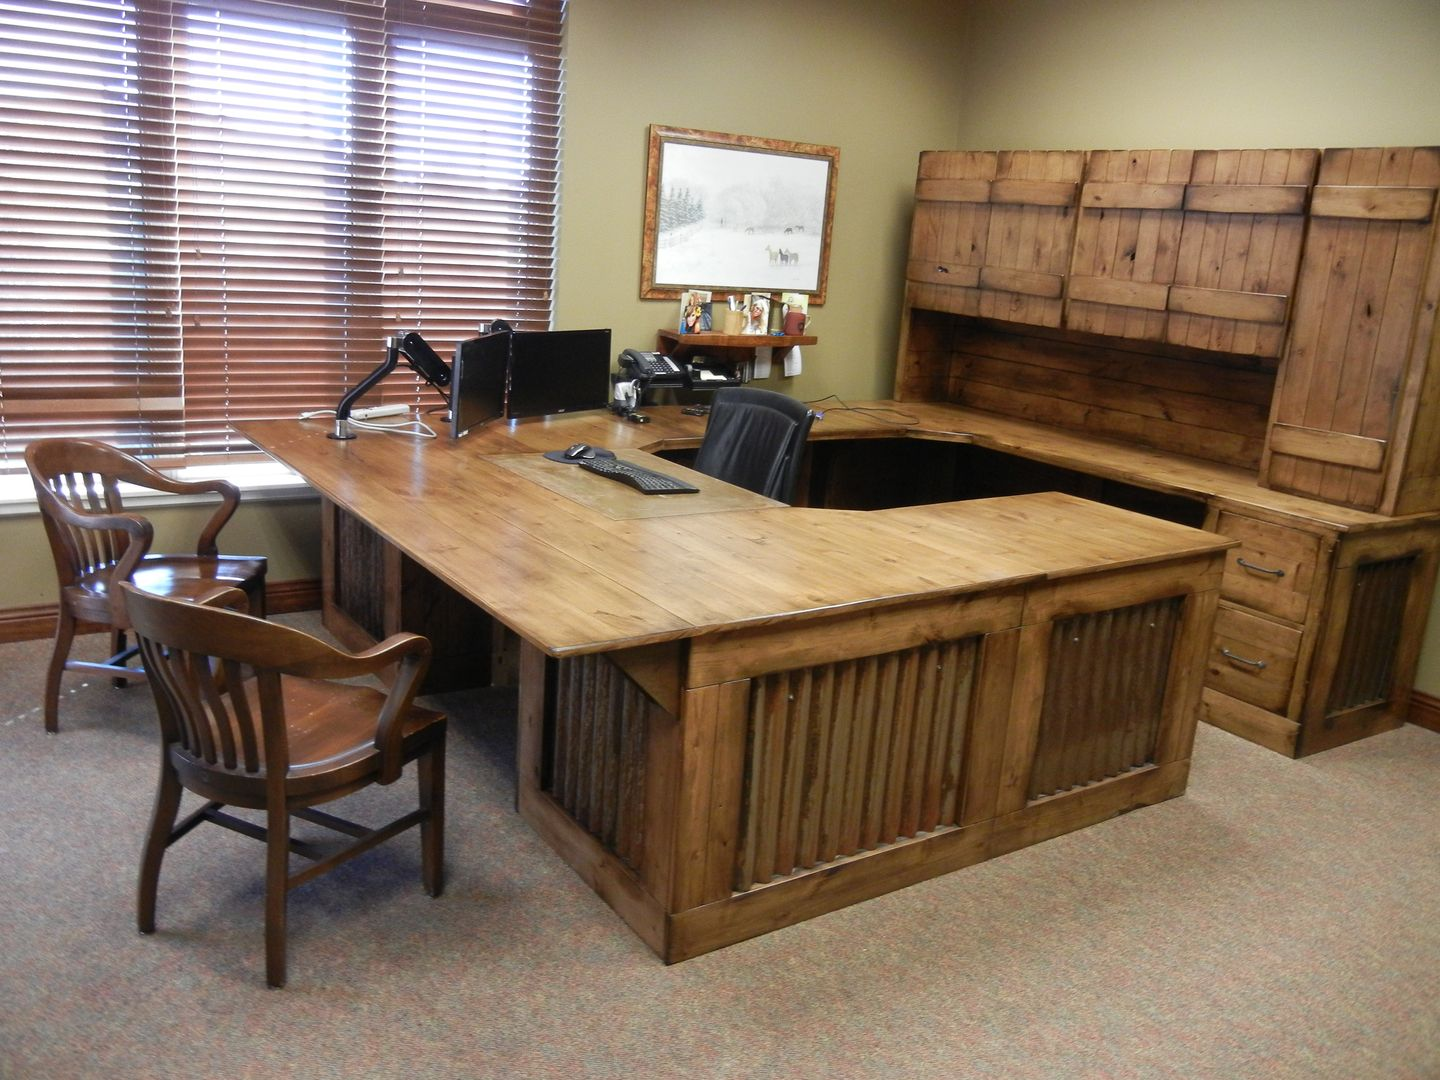 Etonnant Beautiful Custom Office Desk, Made From Rustic Knotty Alder, Aged Barn Tin  Inserts, And Custom Steel Corbels And Writing Area. Reclaimed Wood Look.